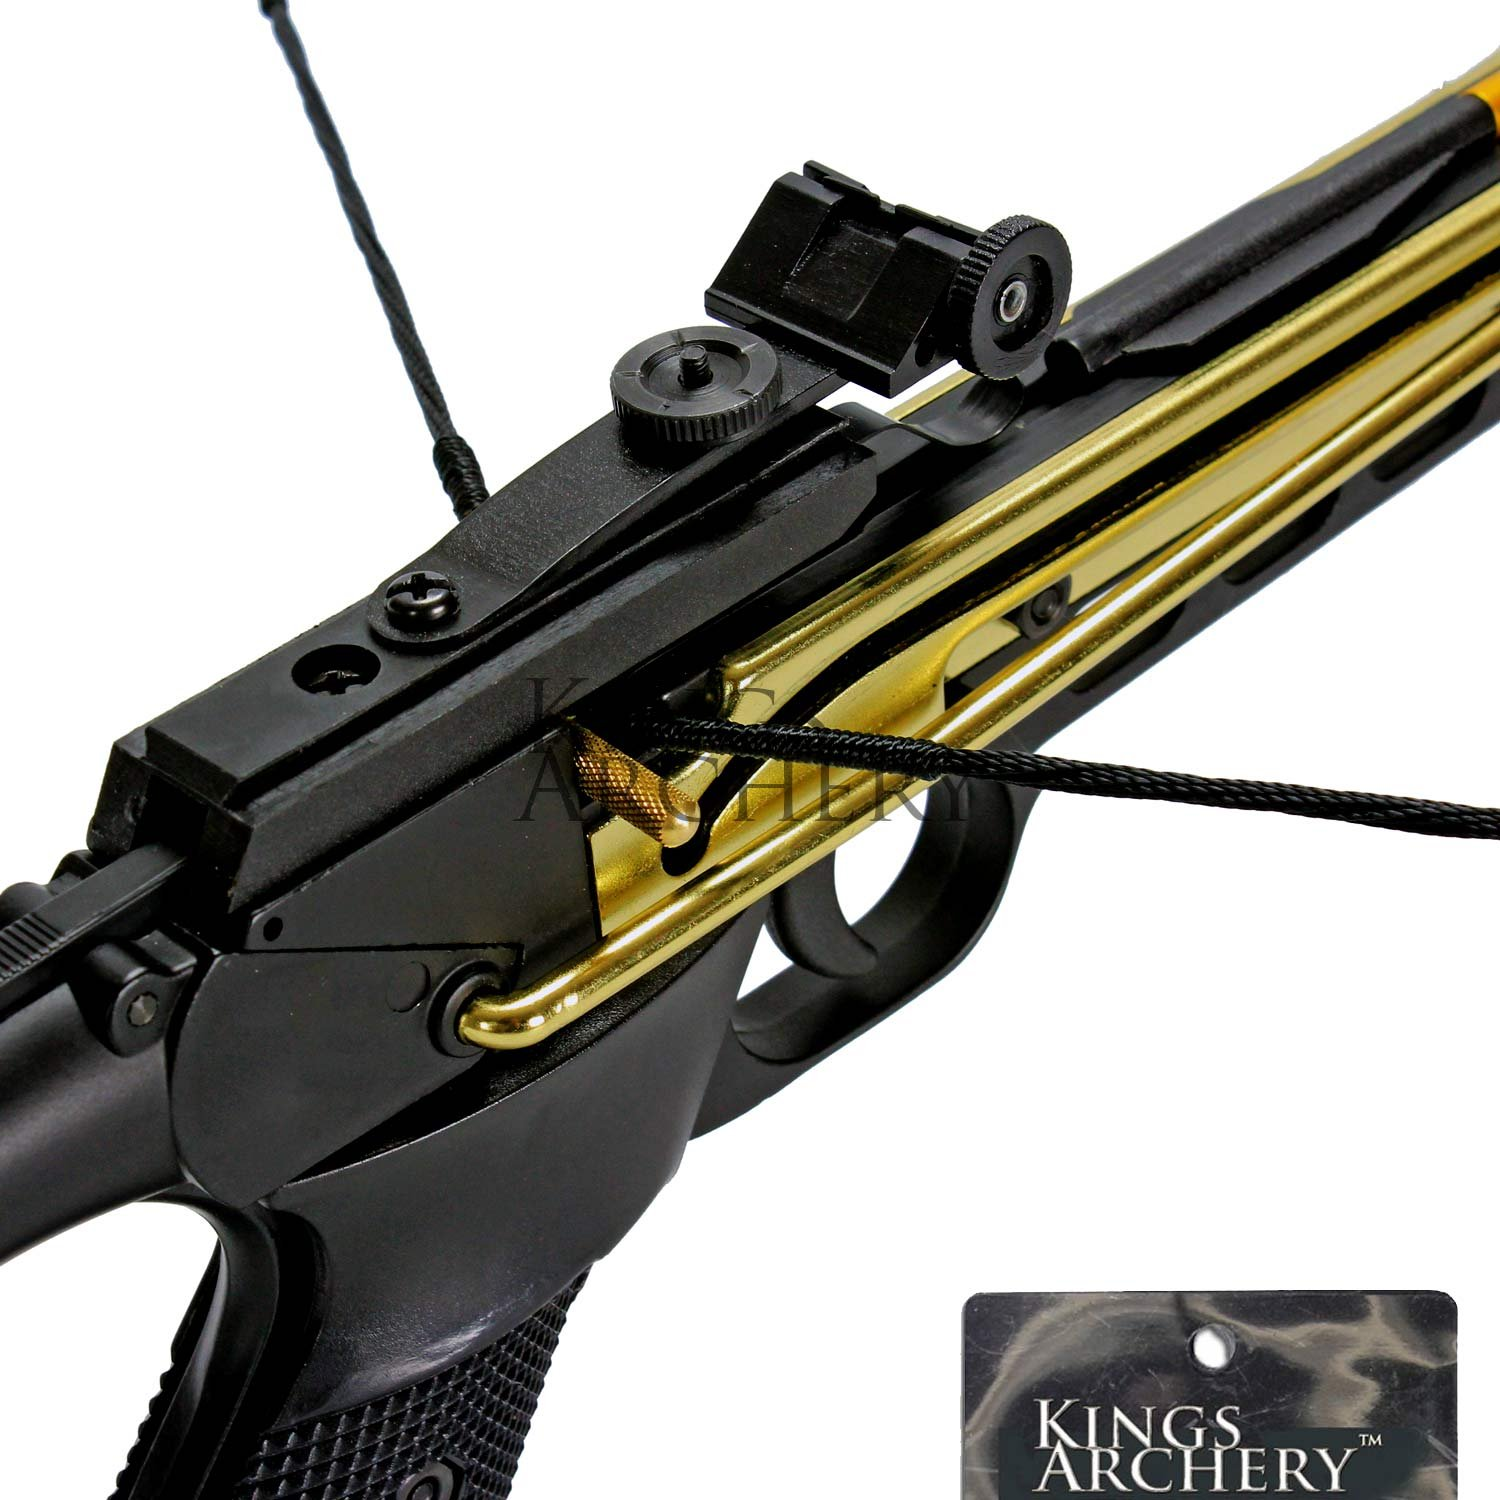 Crossbow Self-Cocking 80 LBS by KingsArchery® with Hunting Scope, 3 Aluminium Arrow Bolts, and Bonus 120-pack of Colored PVC Arrow Bolts + KingsArchery® Warranty by KingsArchery (Image #8)